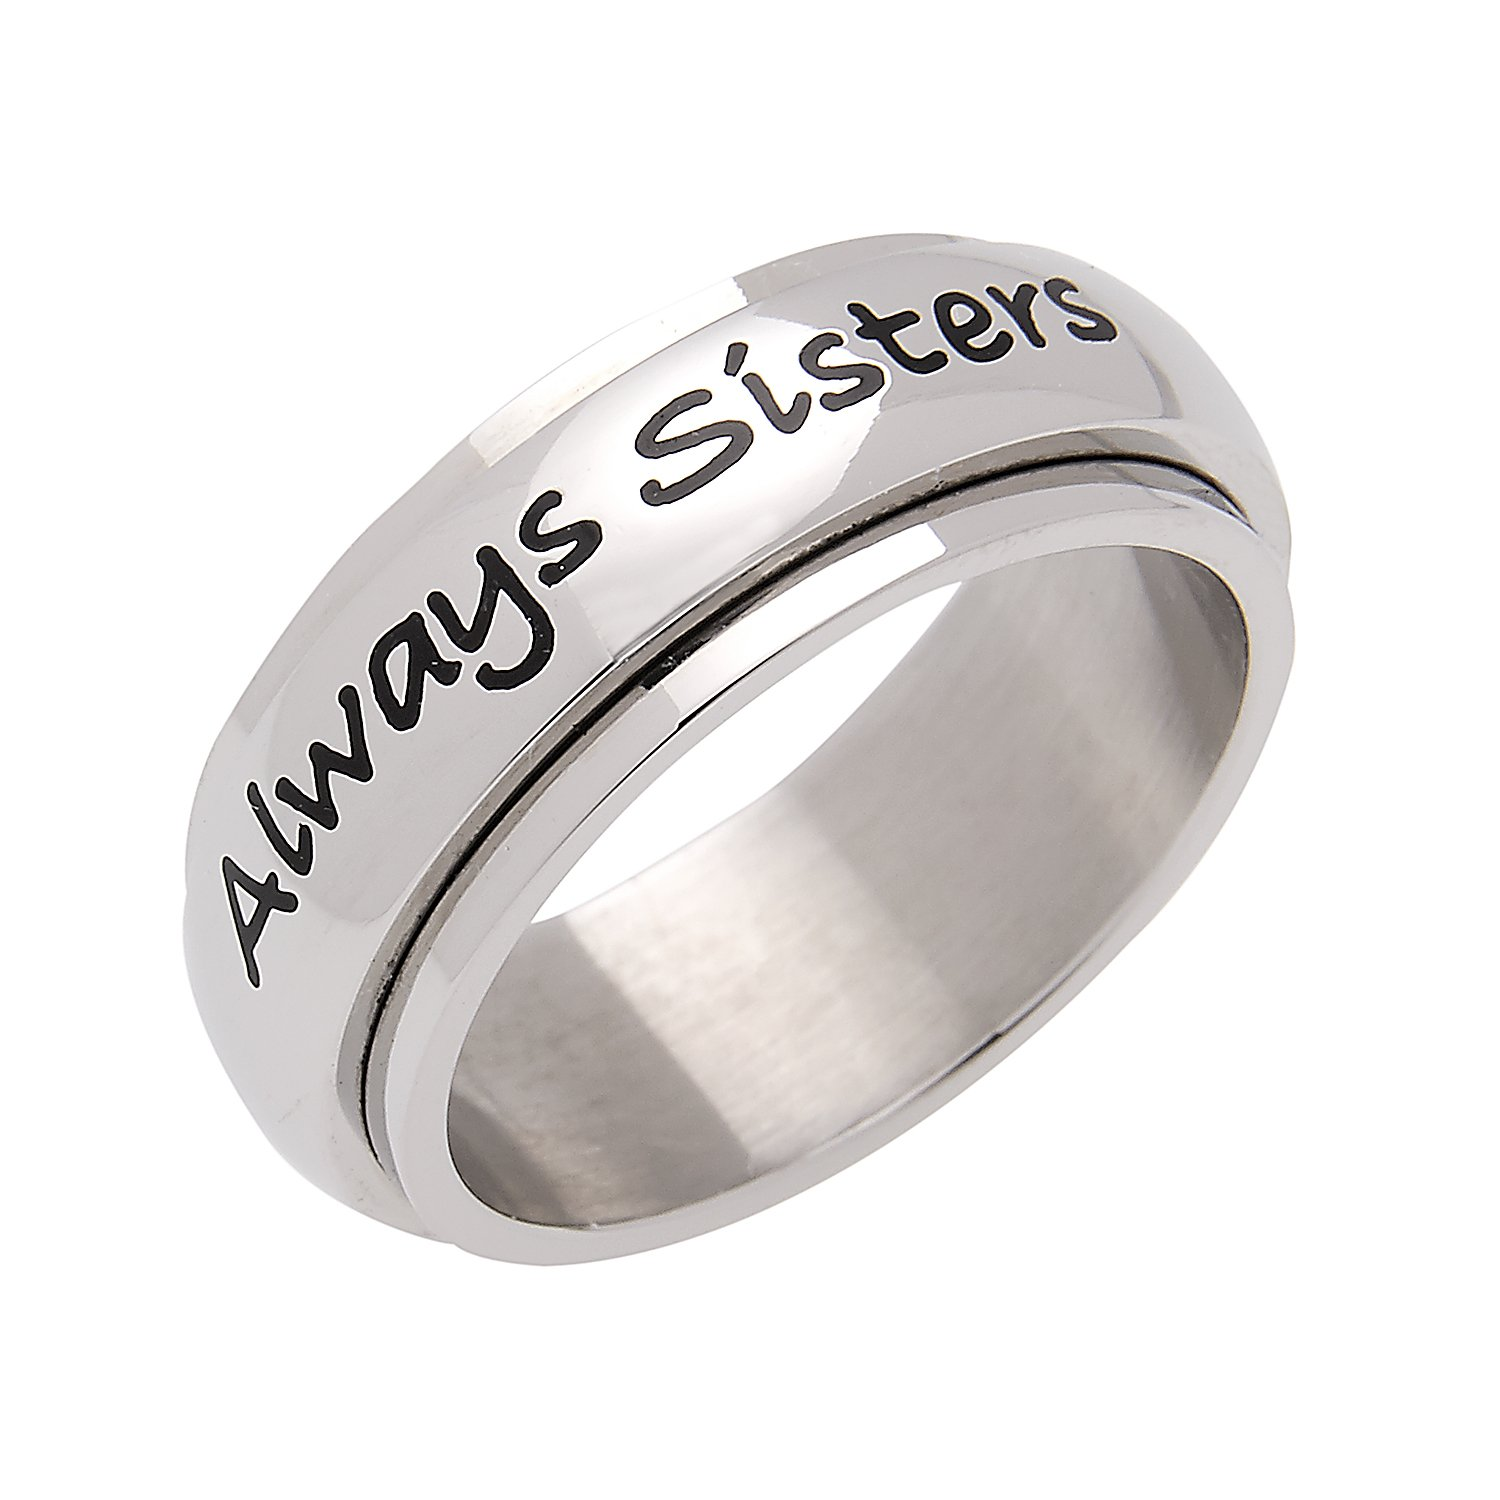 sizes infinity silver engagement friendship rhodium rings plated amazon zirconia com dp forever ring sterling jewelry love cubic slol